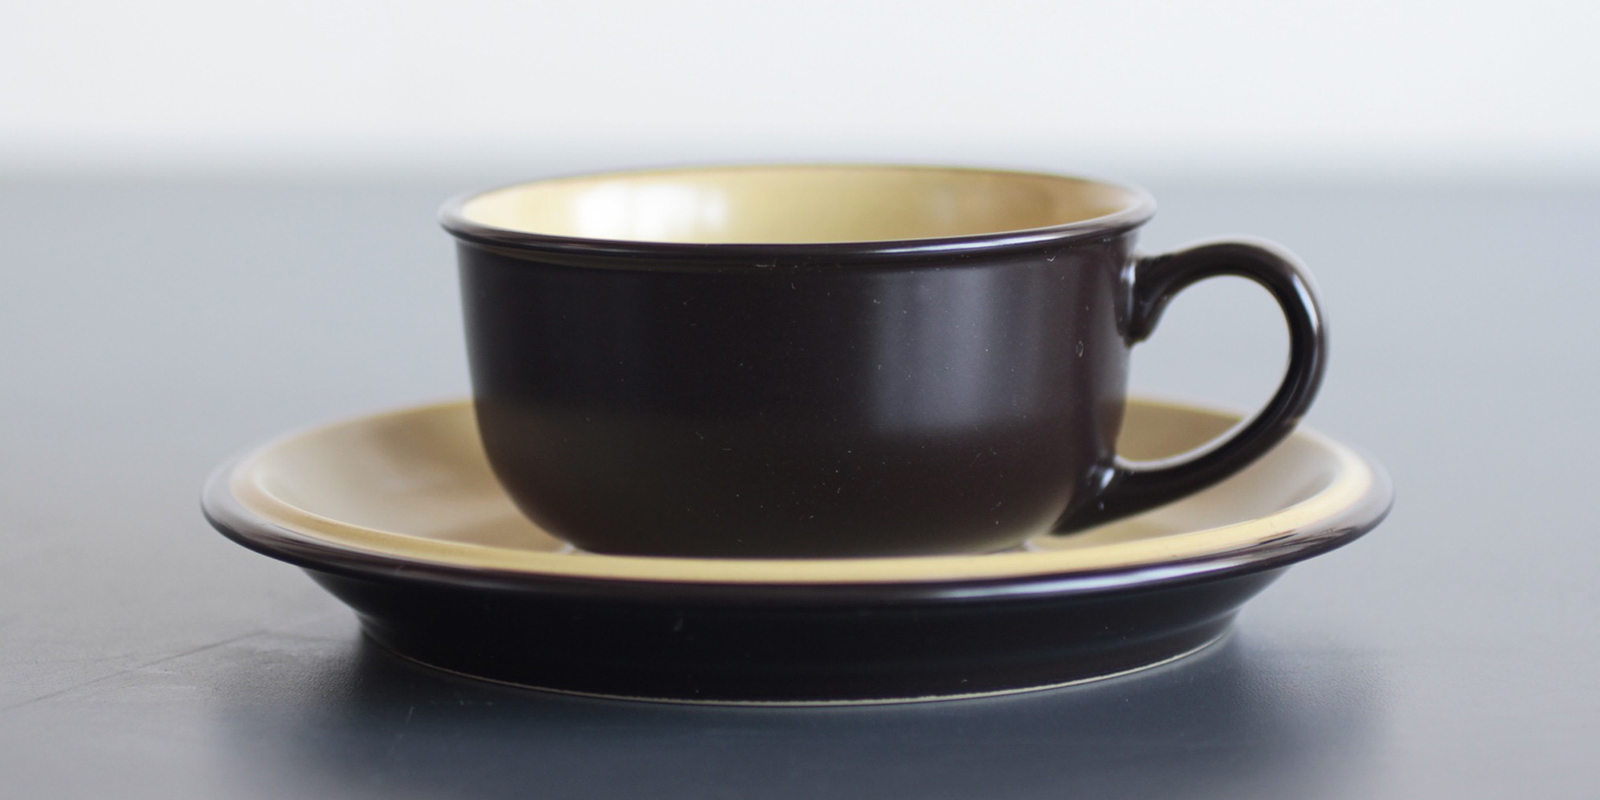 【sold out】Noritake フォルクストーン カップ&ソーサー(USED)